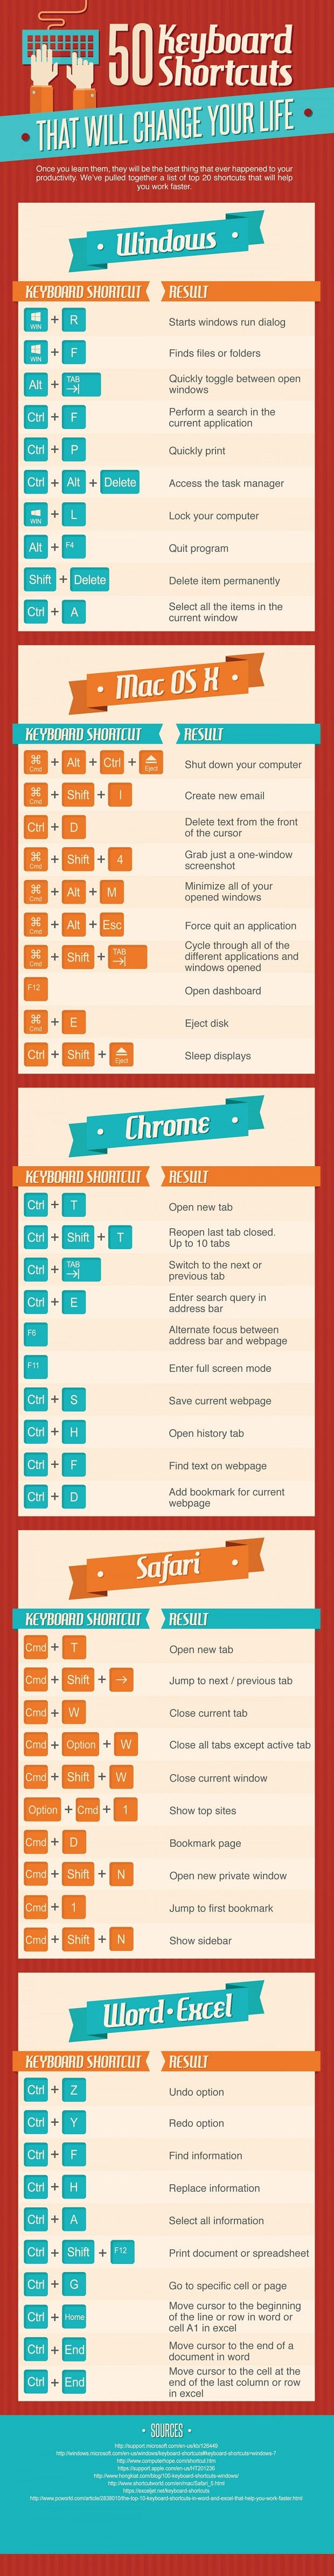 Cheat Sheets for Web Designers - visualistan developers